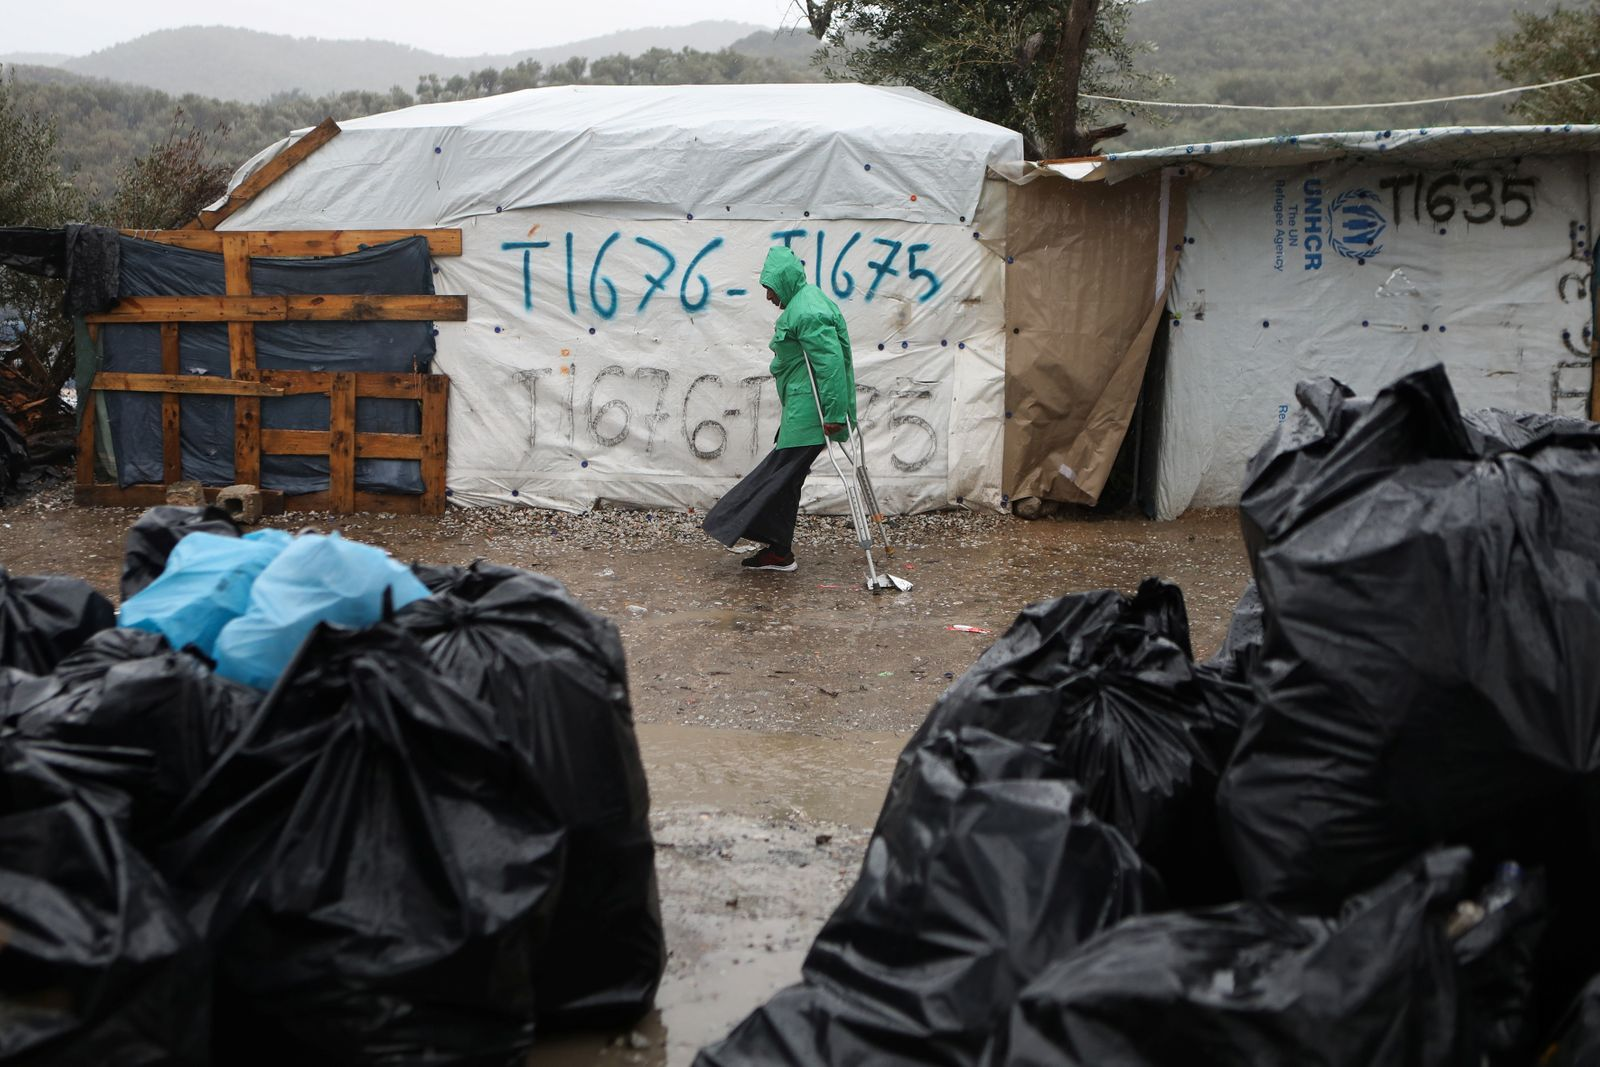 A migrant makes his way during heavy rainfall at a temporary camp for refugees and migrants next to the Moria camp on the island of Lesbos